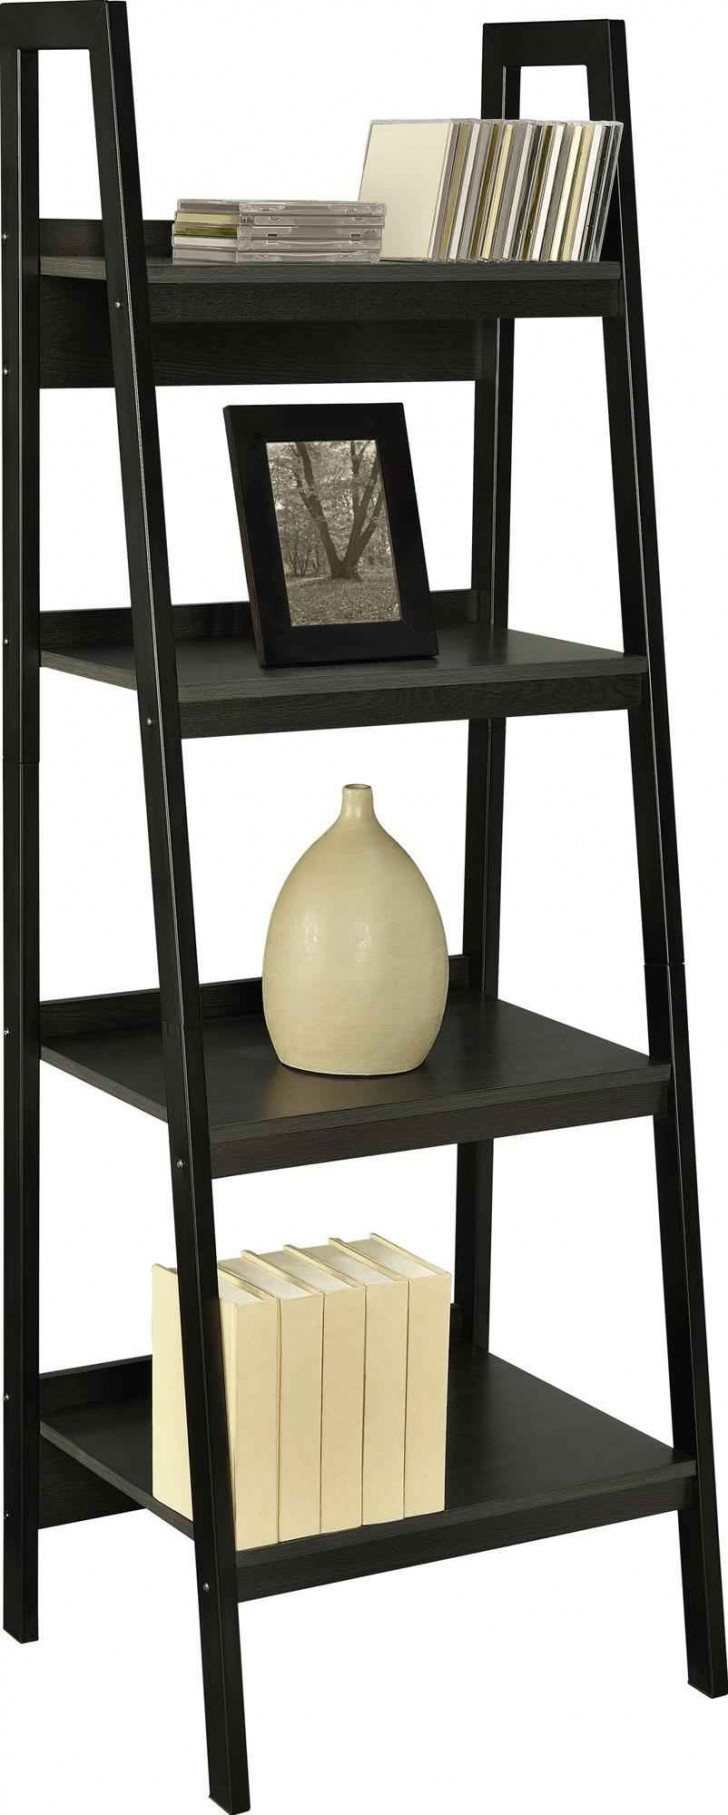 Furniture , 7 Top Ladder Bookshelves Ikea : Home Interior Ideas